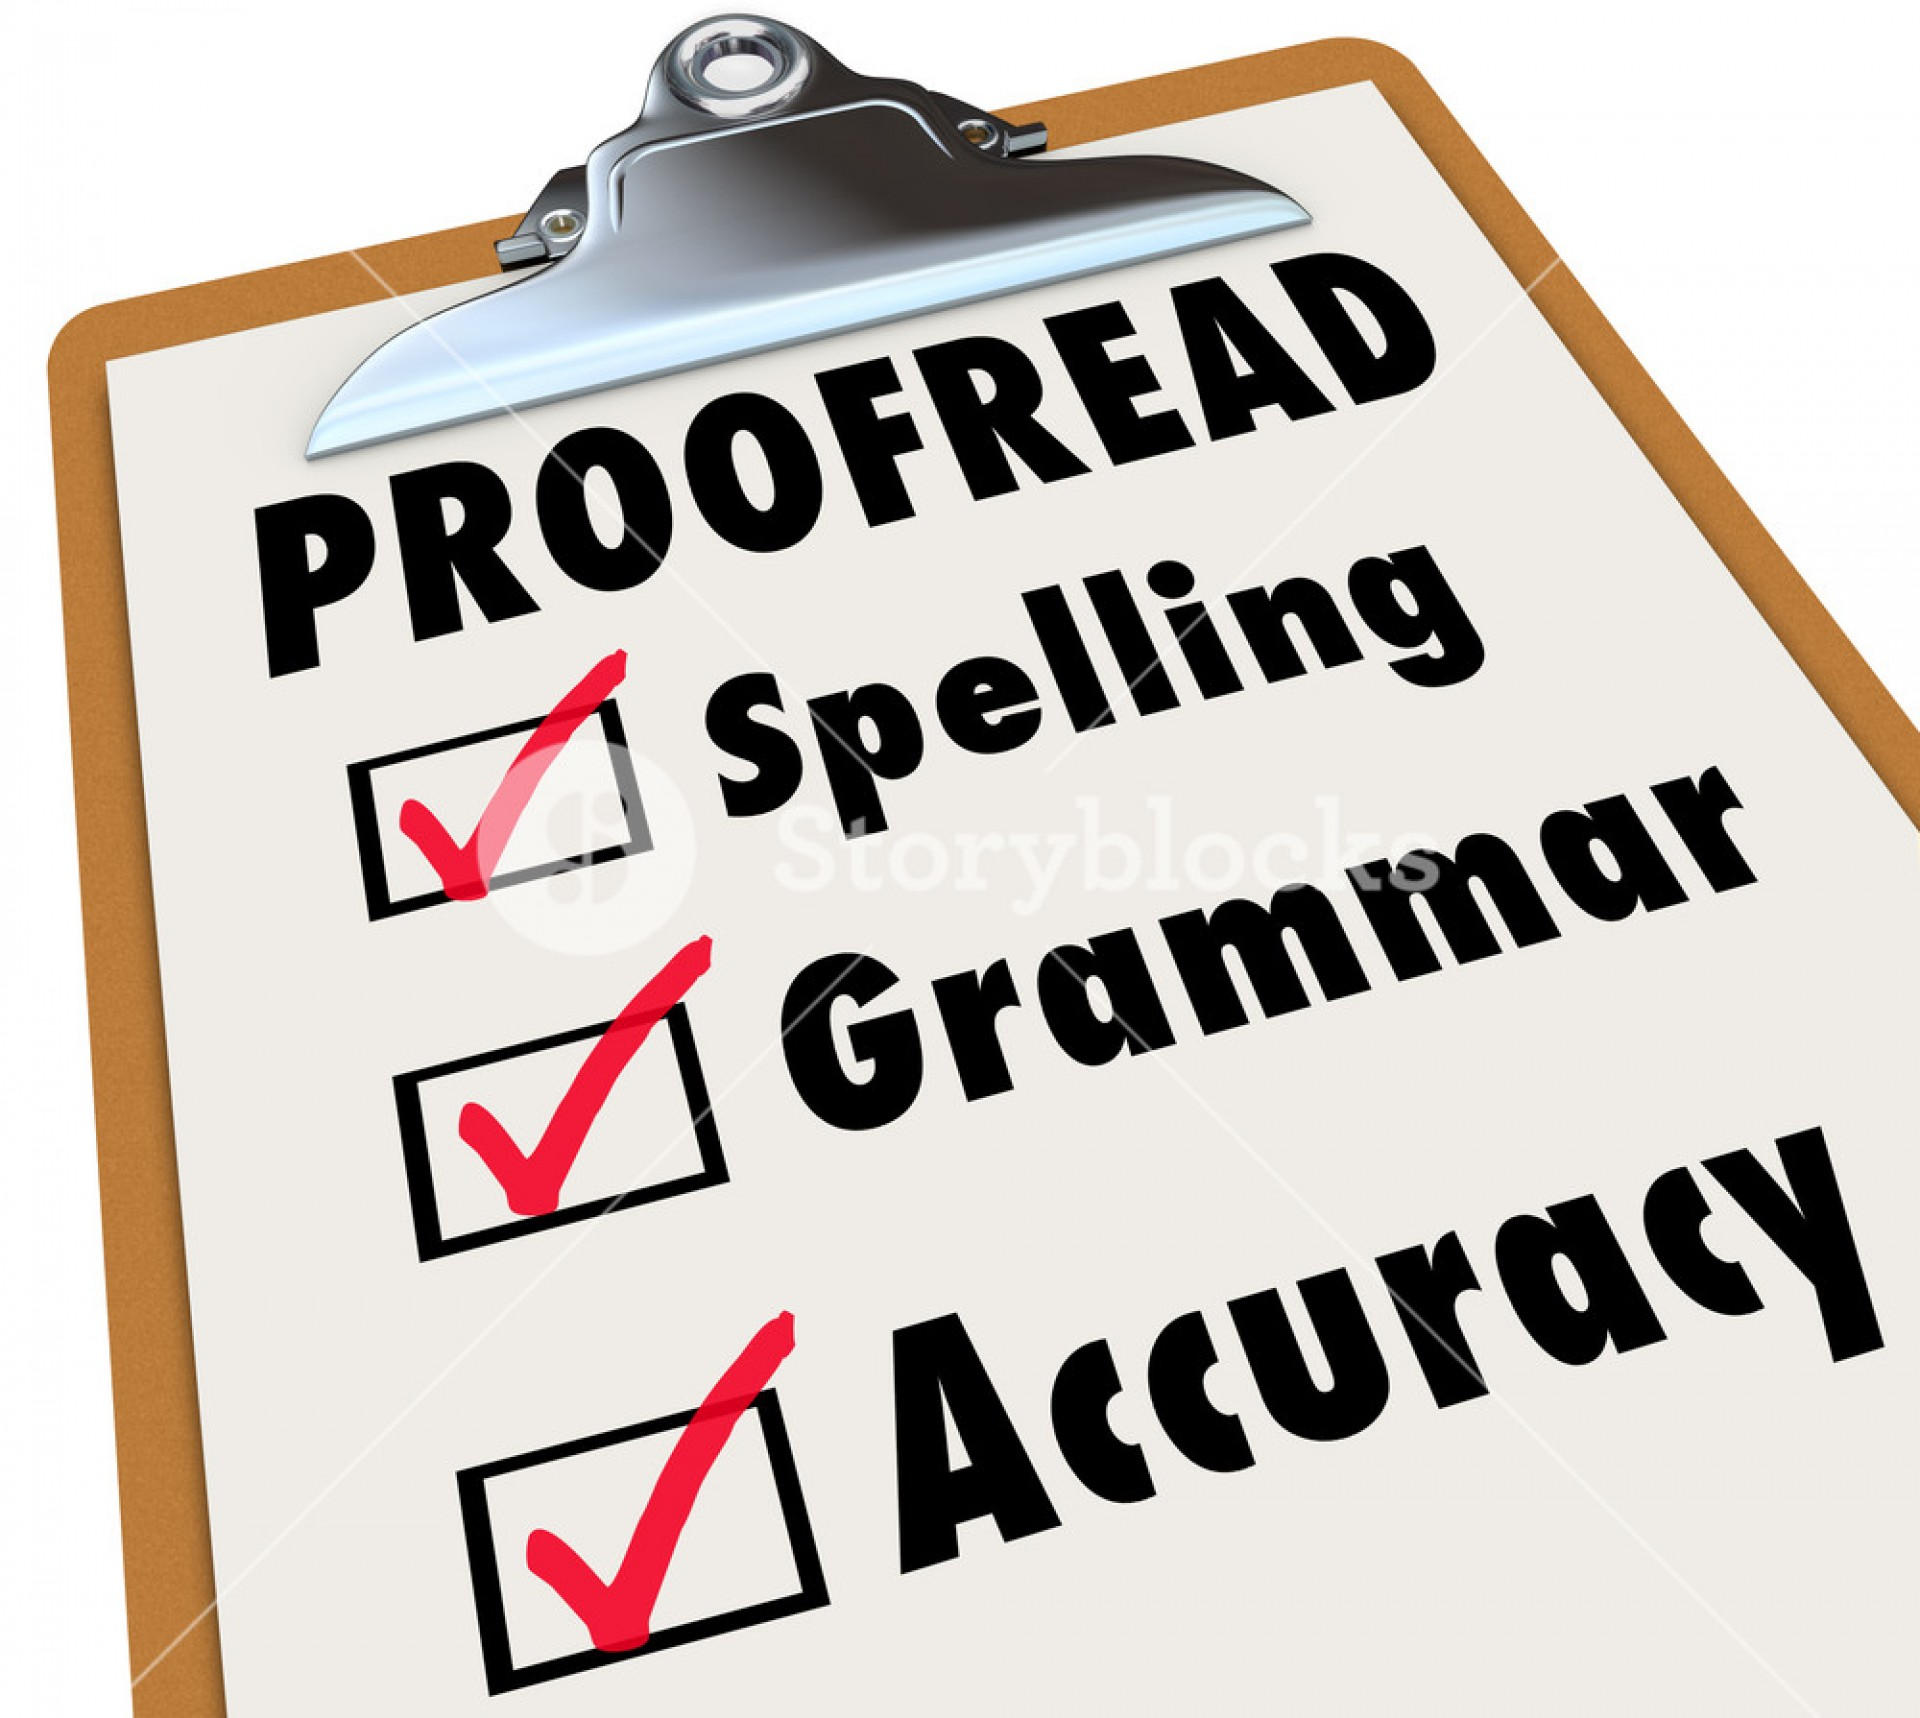 017 Essay Editor Free Example Graphicstock Proofread Checklist And Checked Boxes Next To The Words Spelling Grammar Accuracy As Things An Reviews In Article Or Report Spscidf Imposing College Trial Online 1920